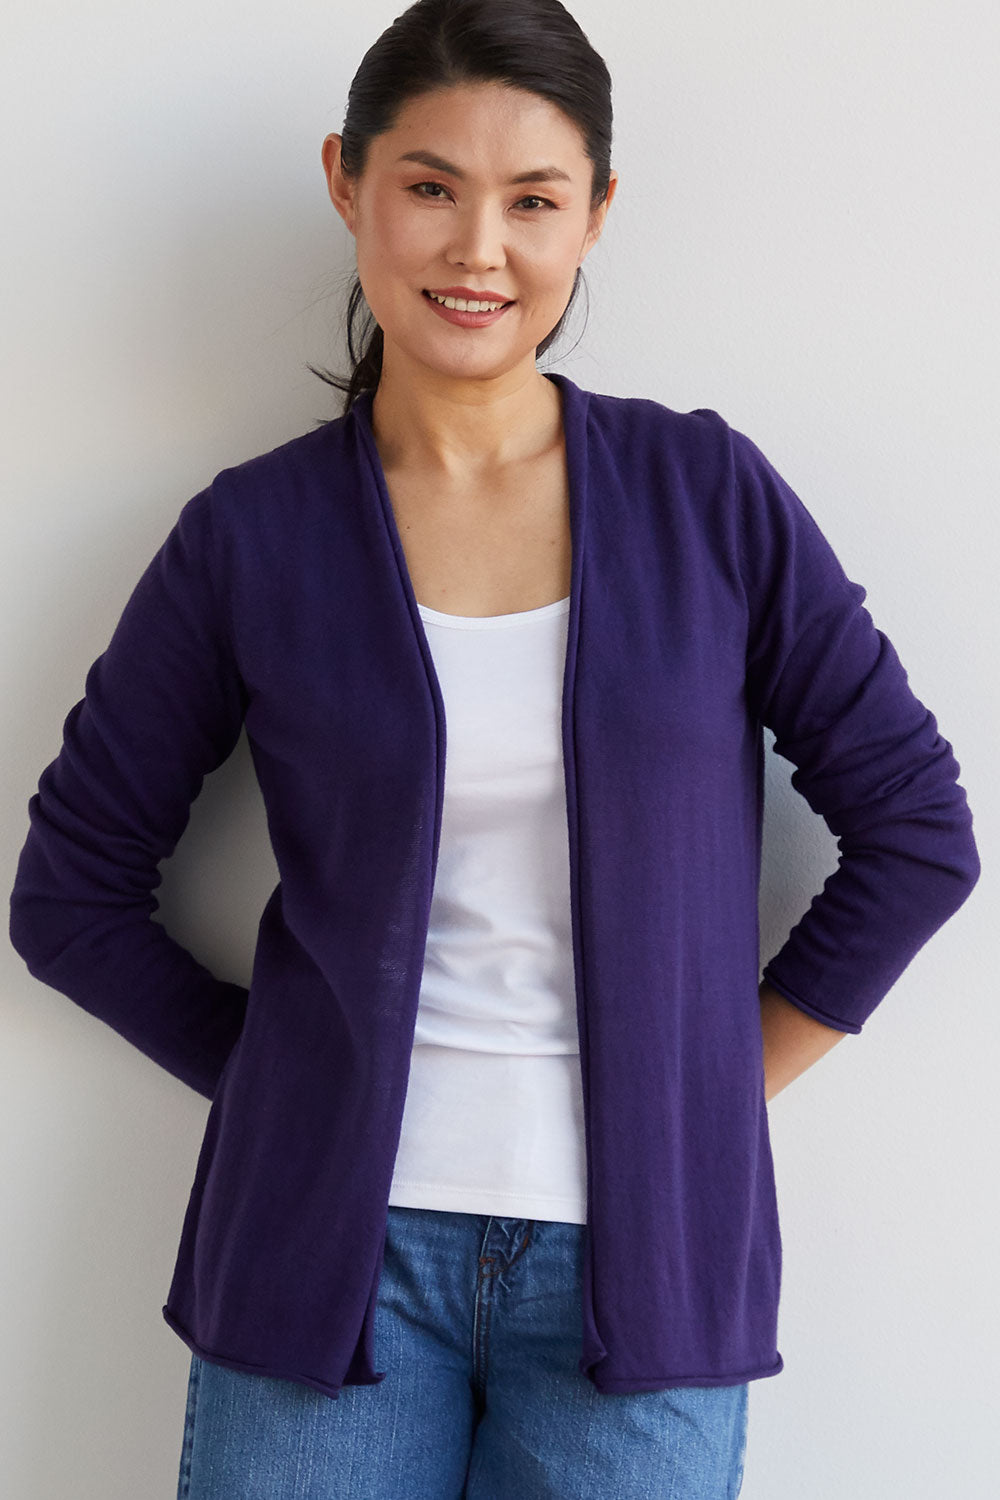 fair-indigo-womens-fair-trade-organic-airy-cardigan-sweater